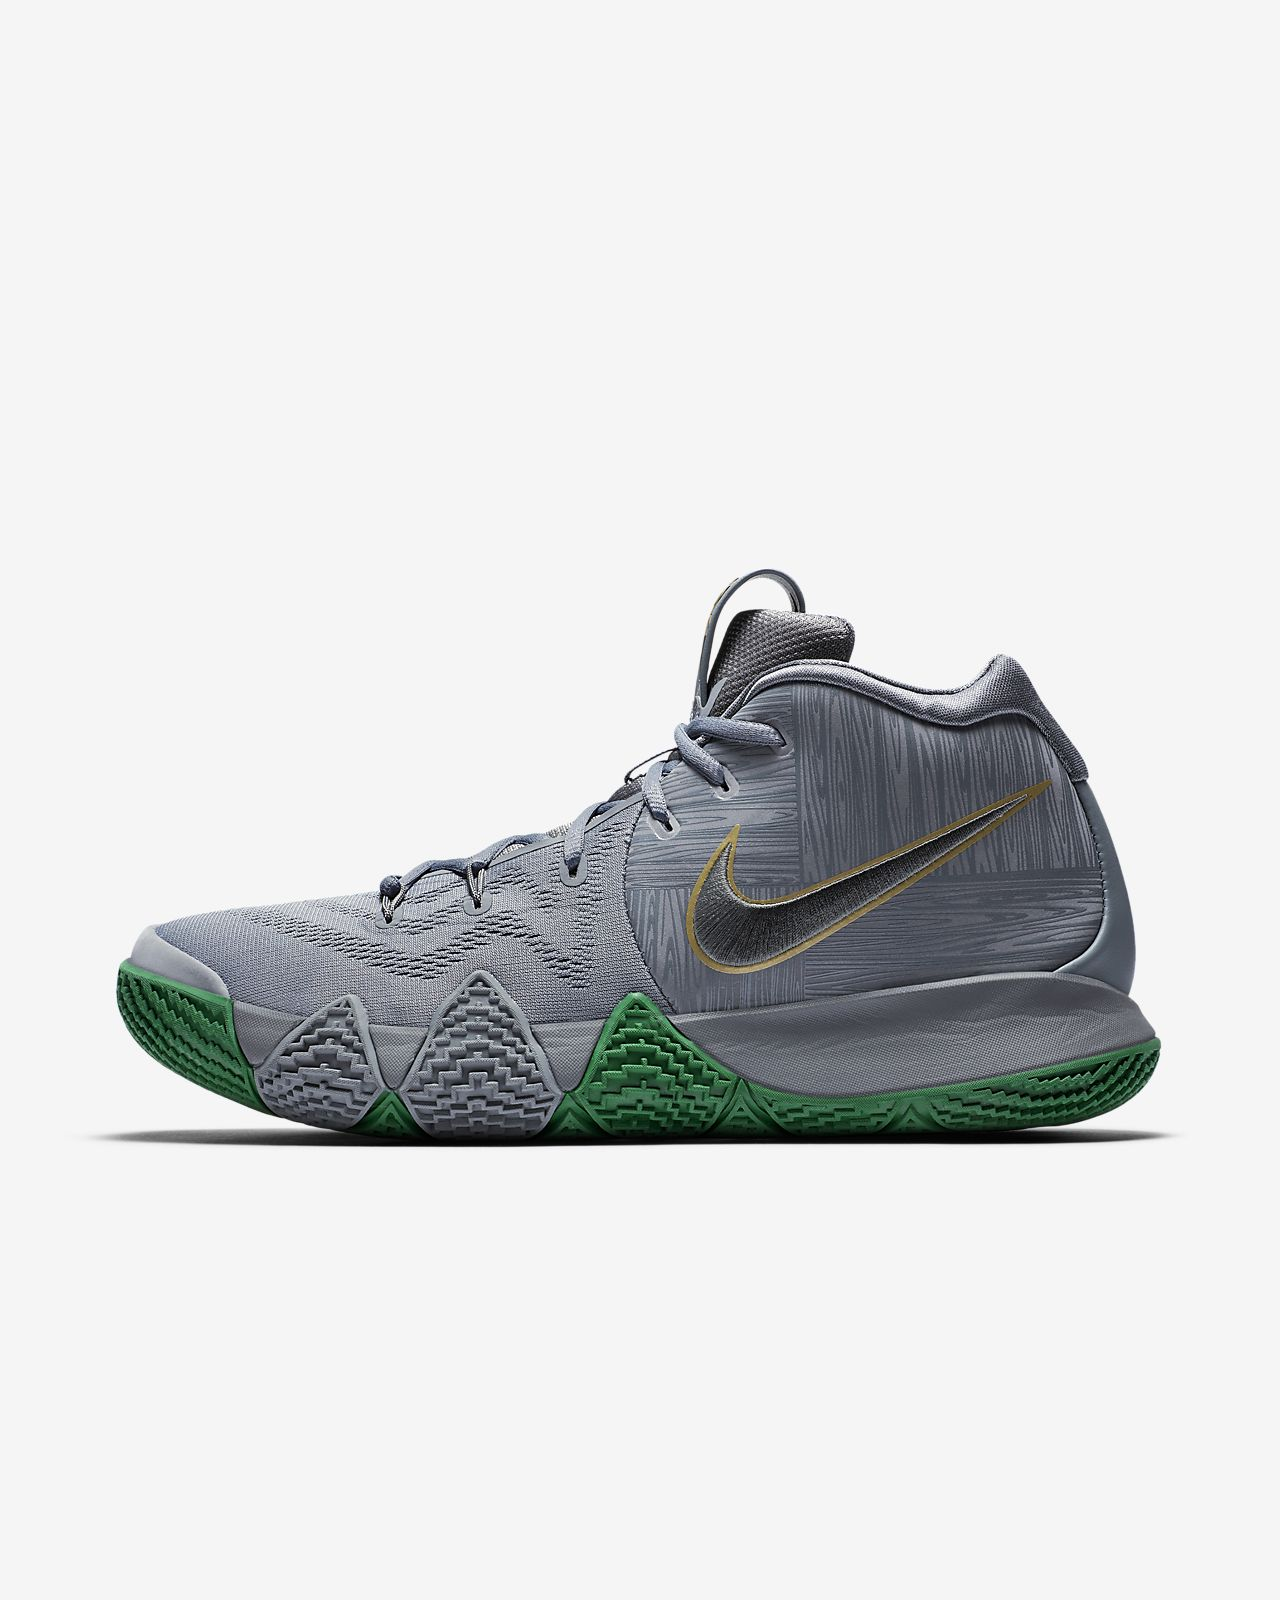 ... denmark low resolution kyrie 4 basketball shoe kyrie 4 basketball shoe  2b251 47e5a 26605c2d5